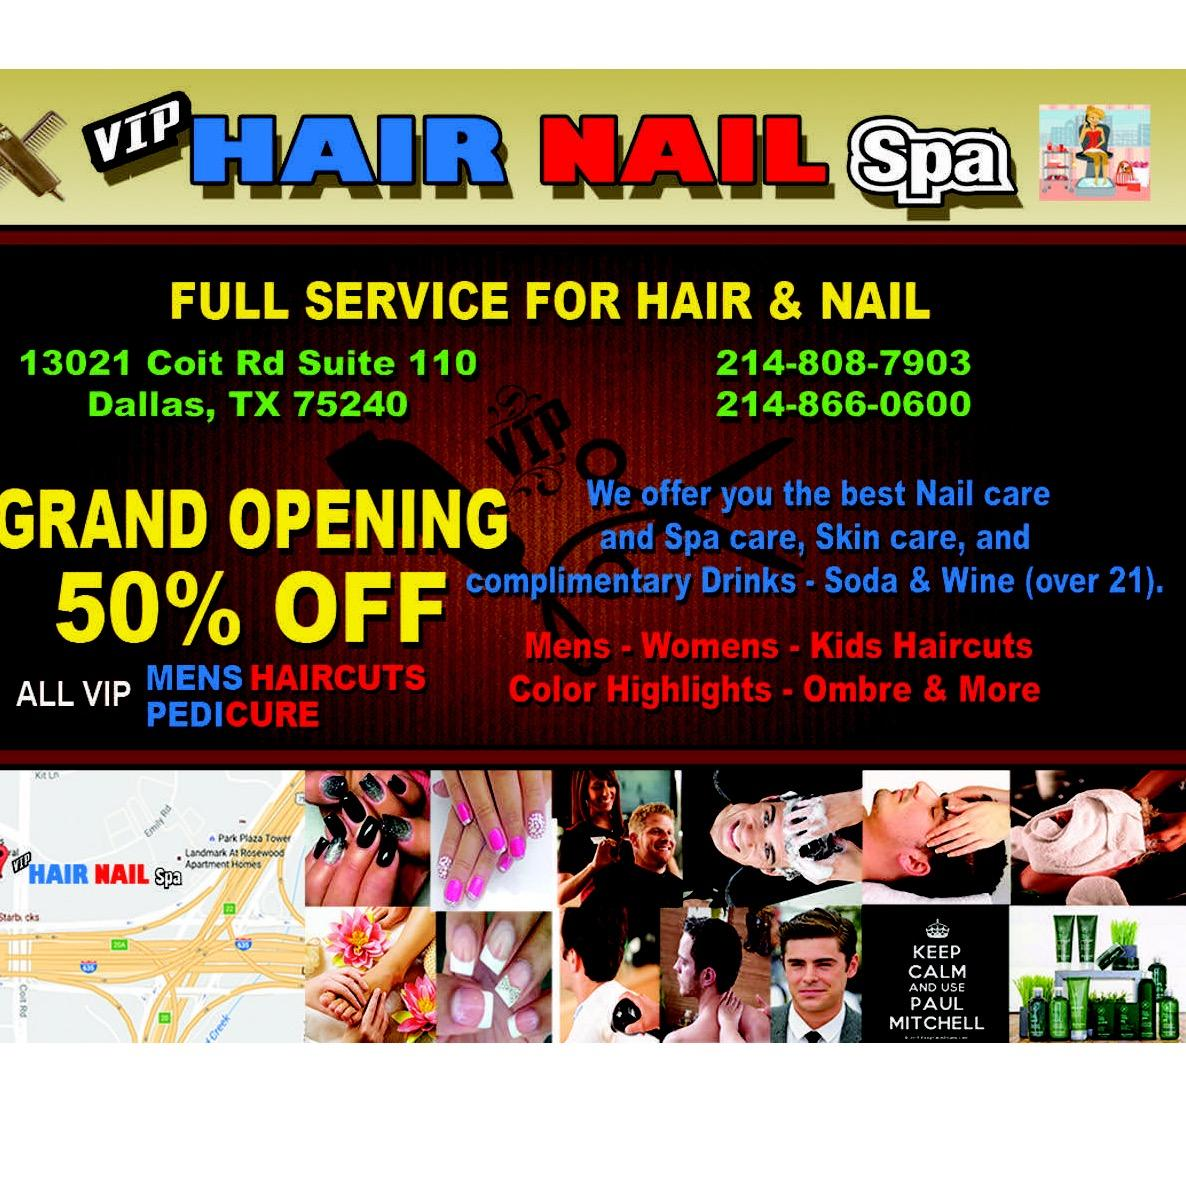 vip hair nail spa coupons near me in dallas 8coupons. Black Bedroom Furniture Sets. Home Design Ideas